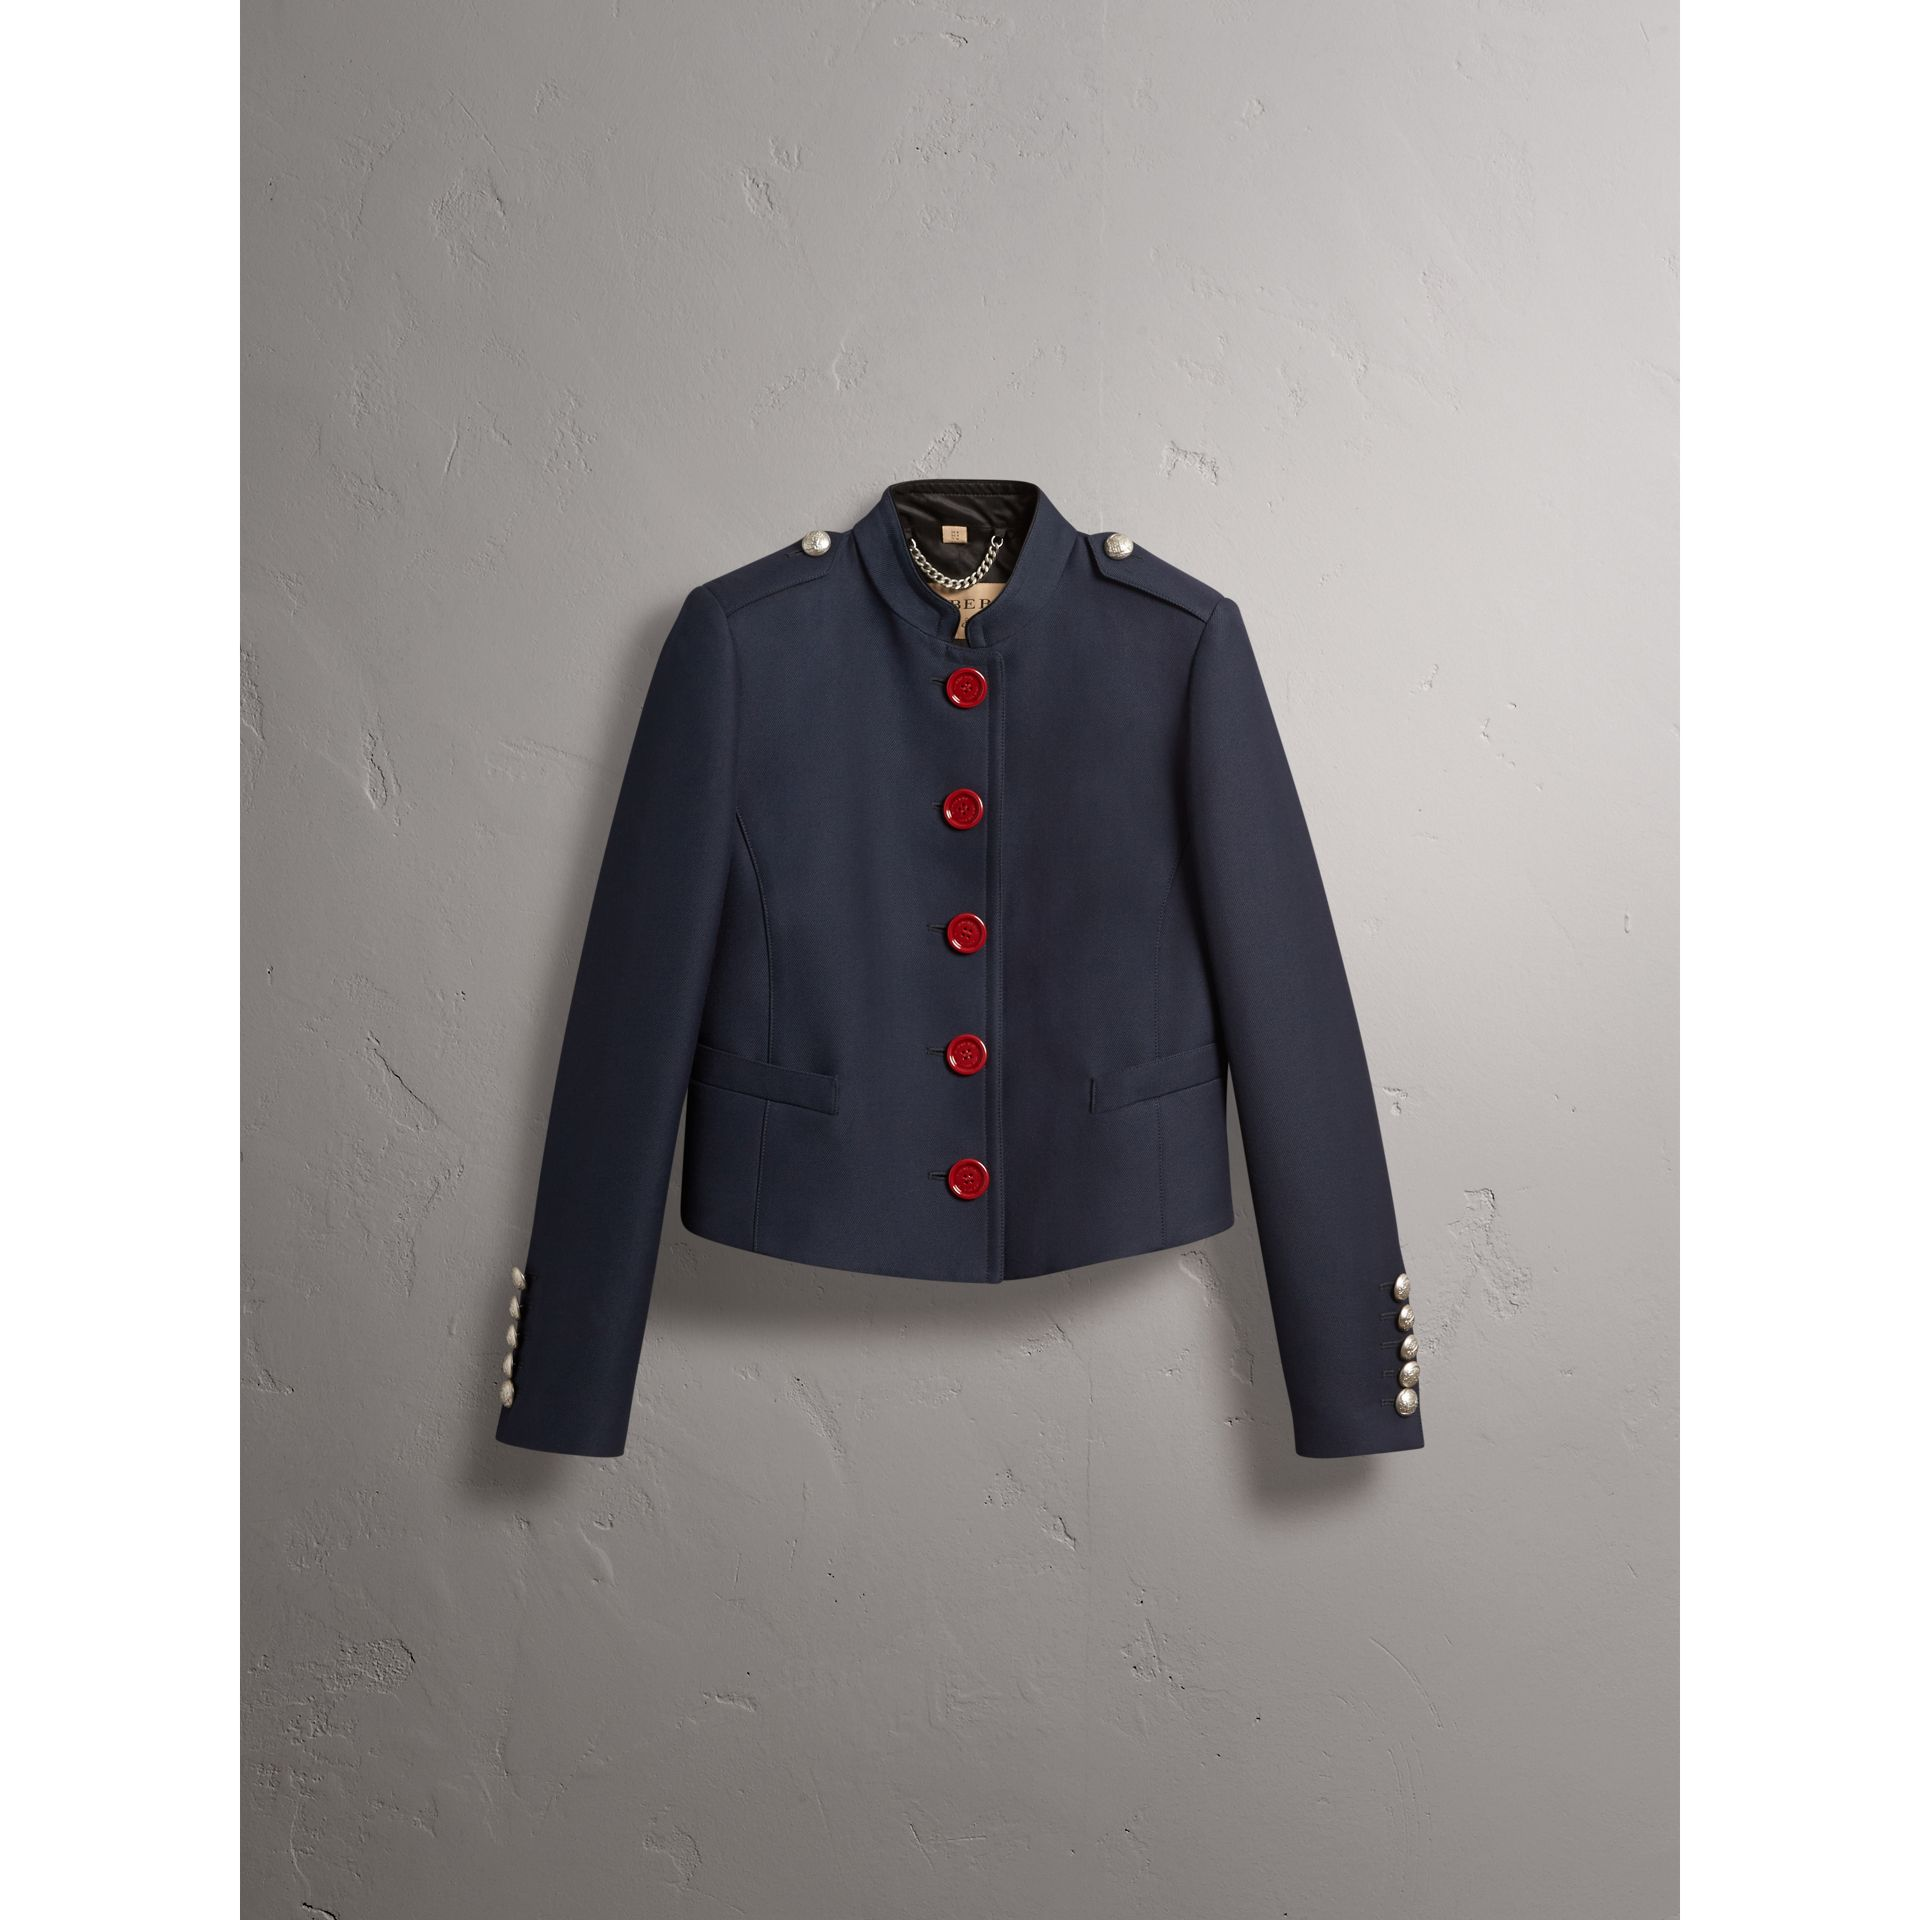 Resin Button Wool Cotton Blend Jacket in Ink Blue - Women | Burberry United States - gallery image 4